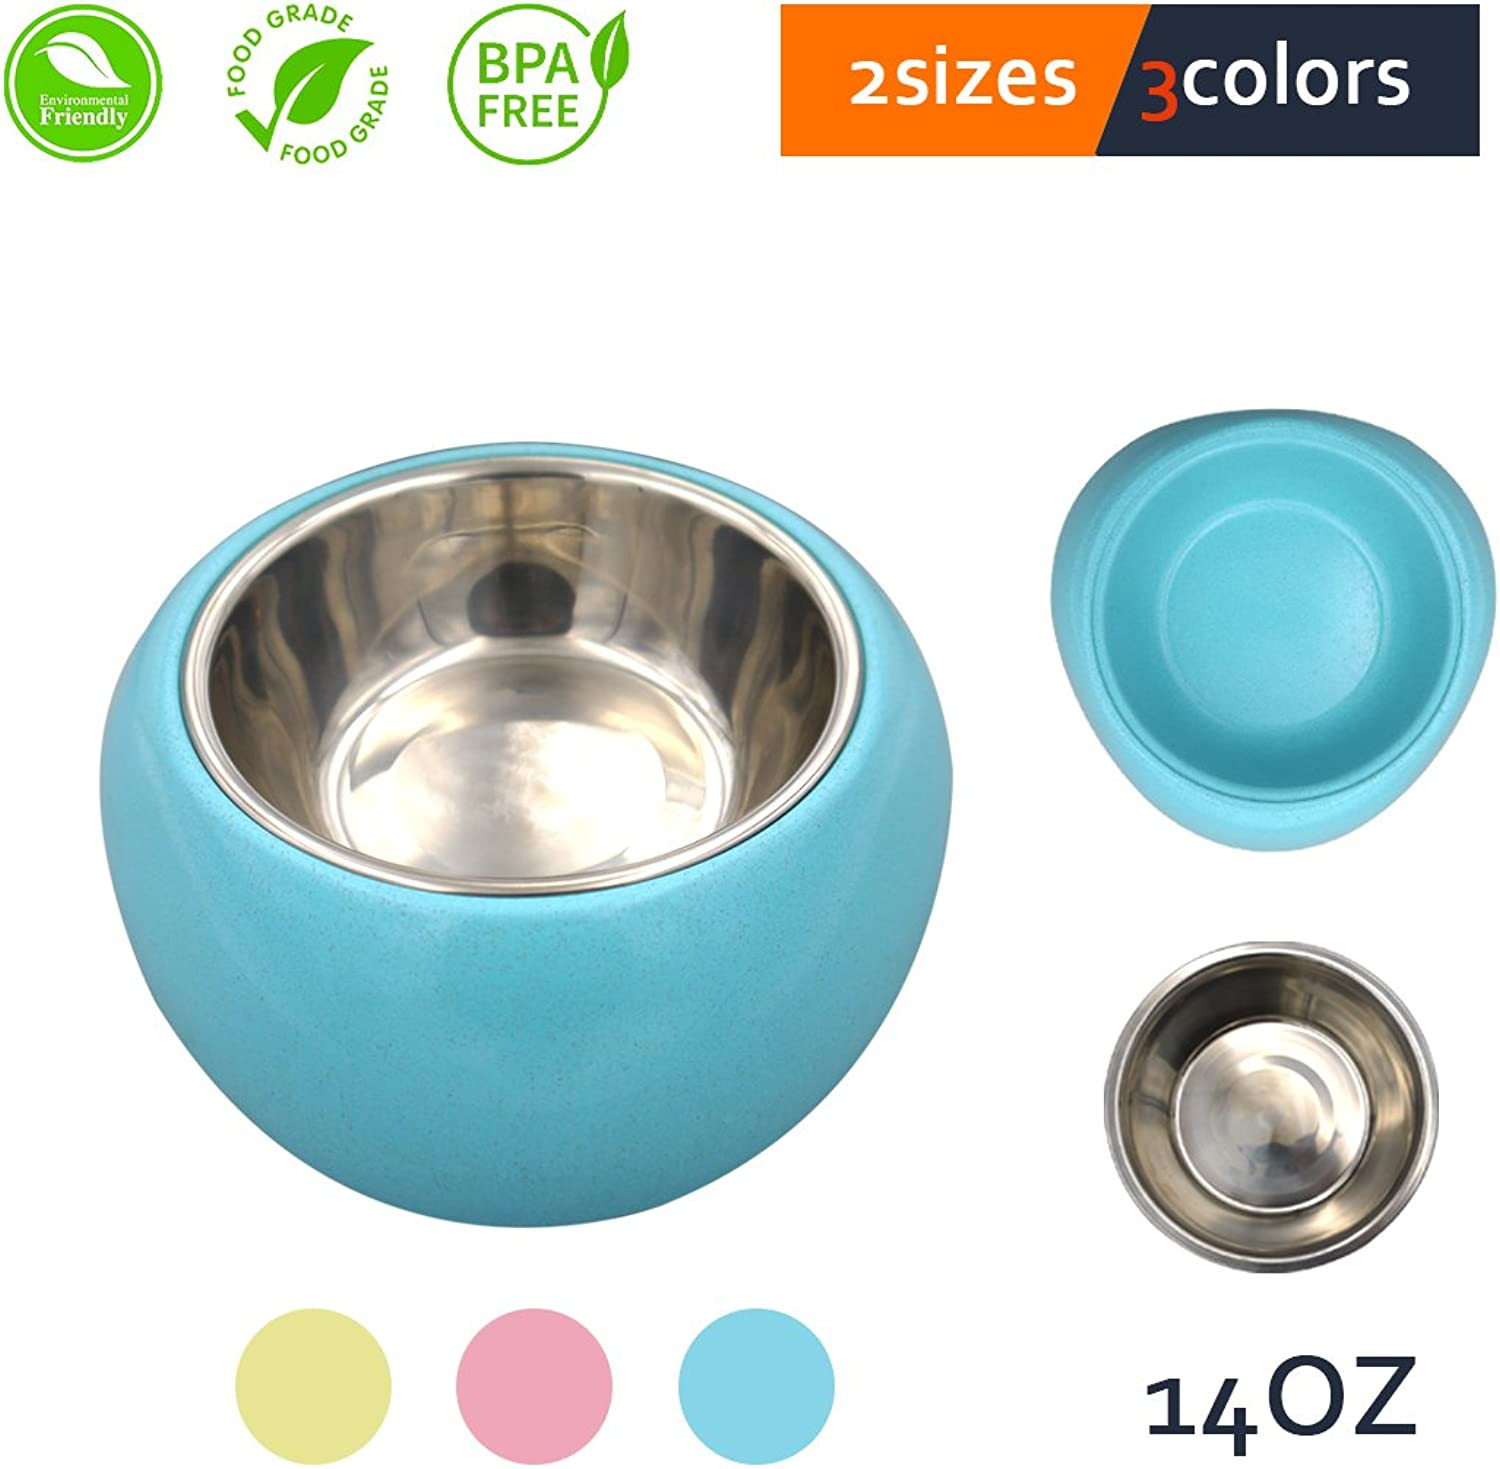 Mainstreet Dog Cat Bowl 14OZ EcoFriendly Removable Stainless Steel Food Water Station Anti Slip Dog Feeder Treats Snacks Holder Macaron color Small Pet